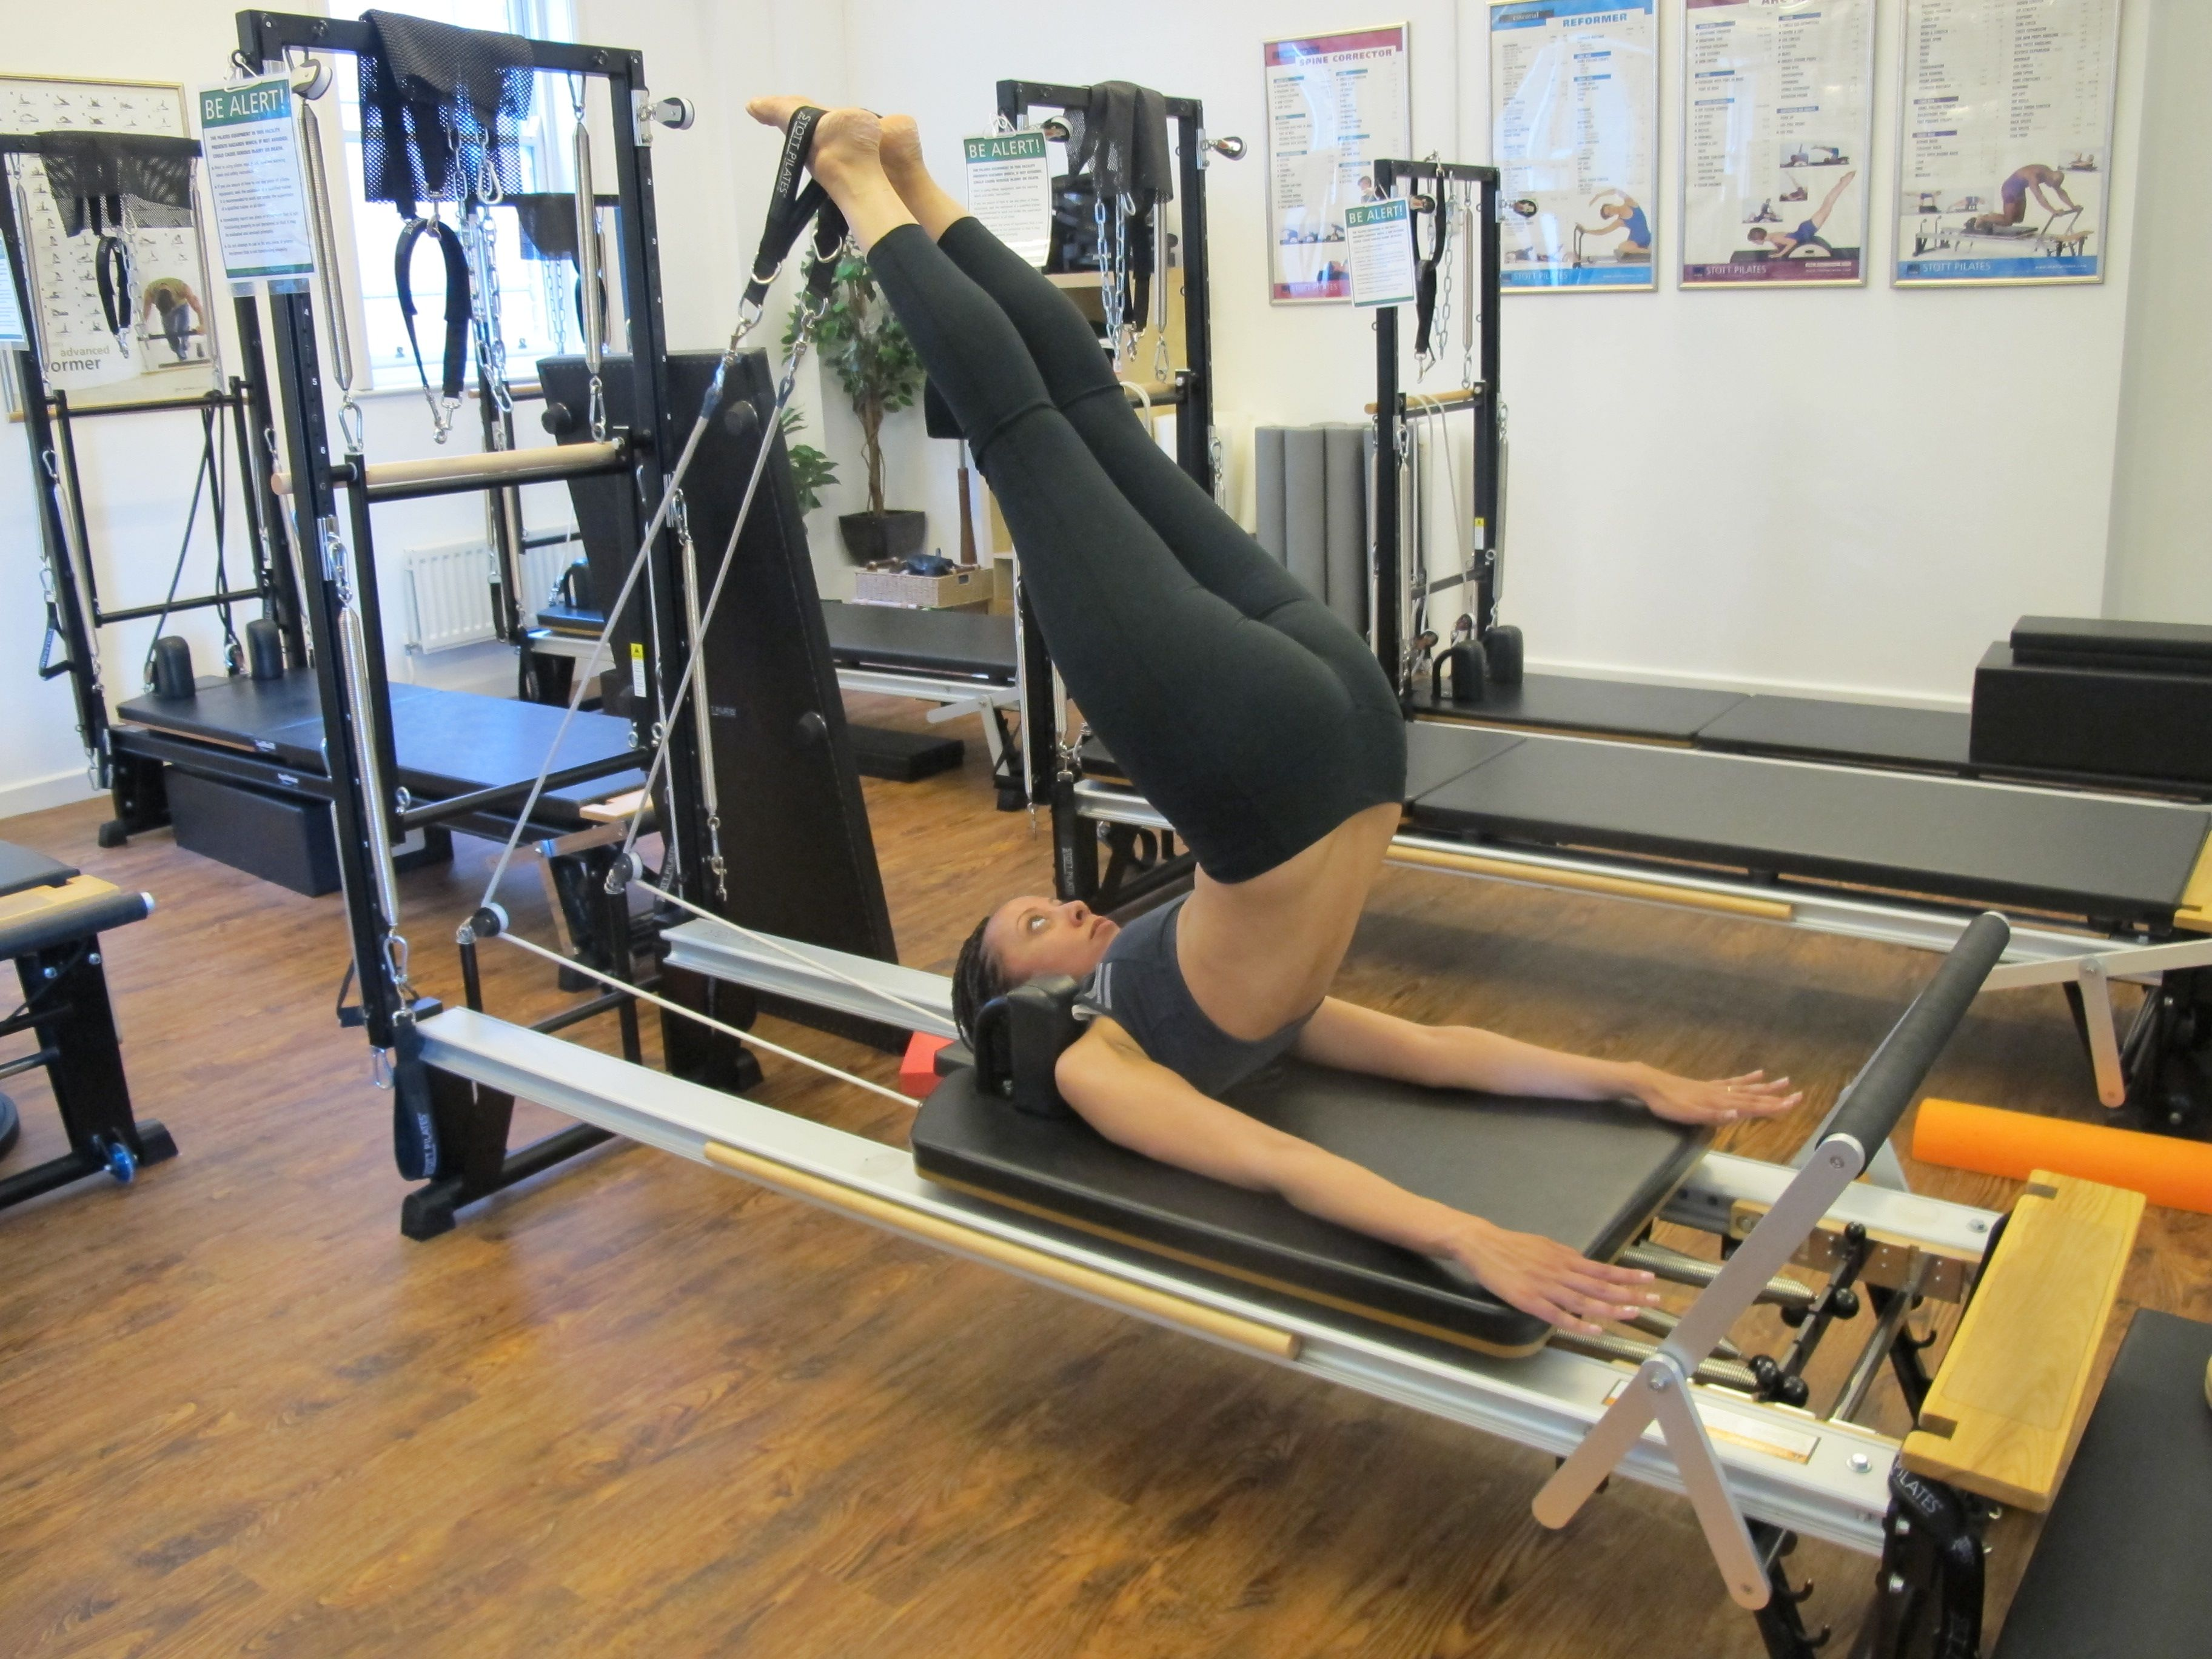 pilates reformer machines at the yoga lounge - Pilates Reformer Machine